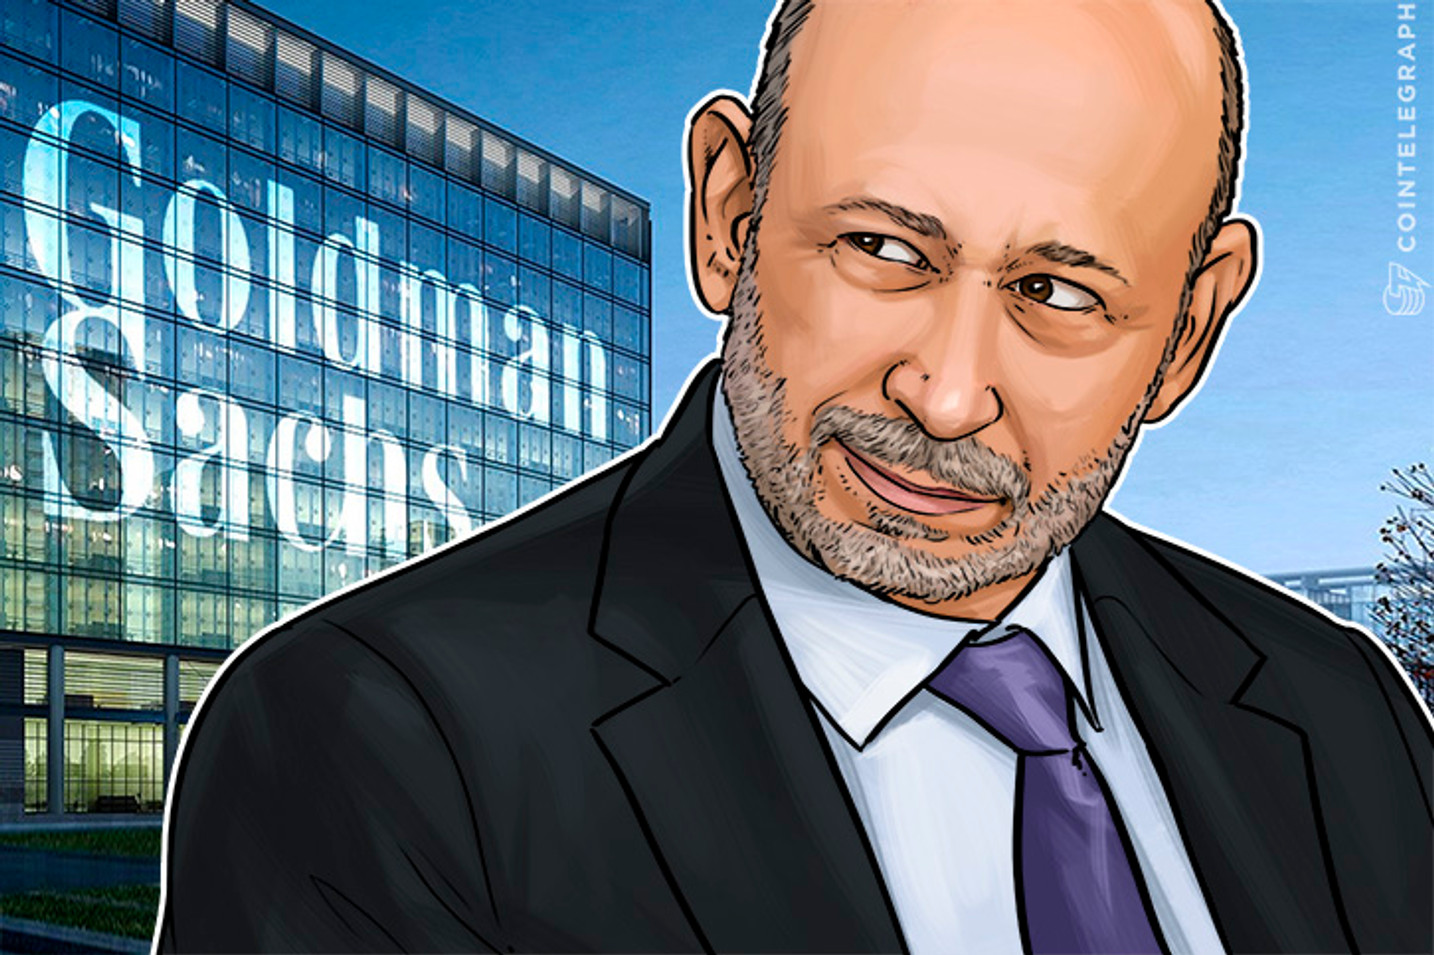 Goldman Sachs Is Not Starting A Crypto Trading Desk, But They Did Invest In One